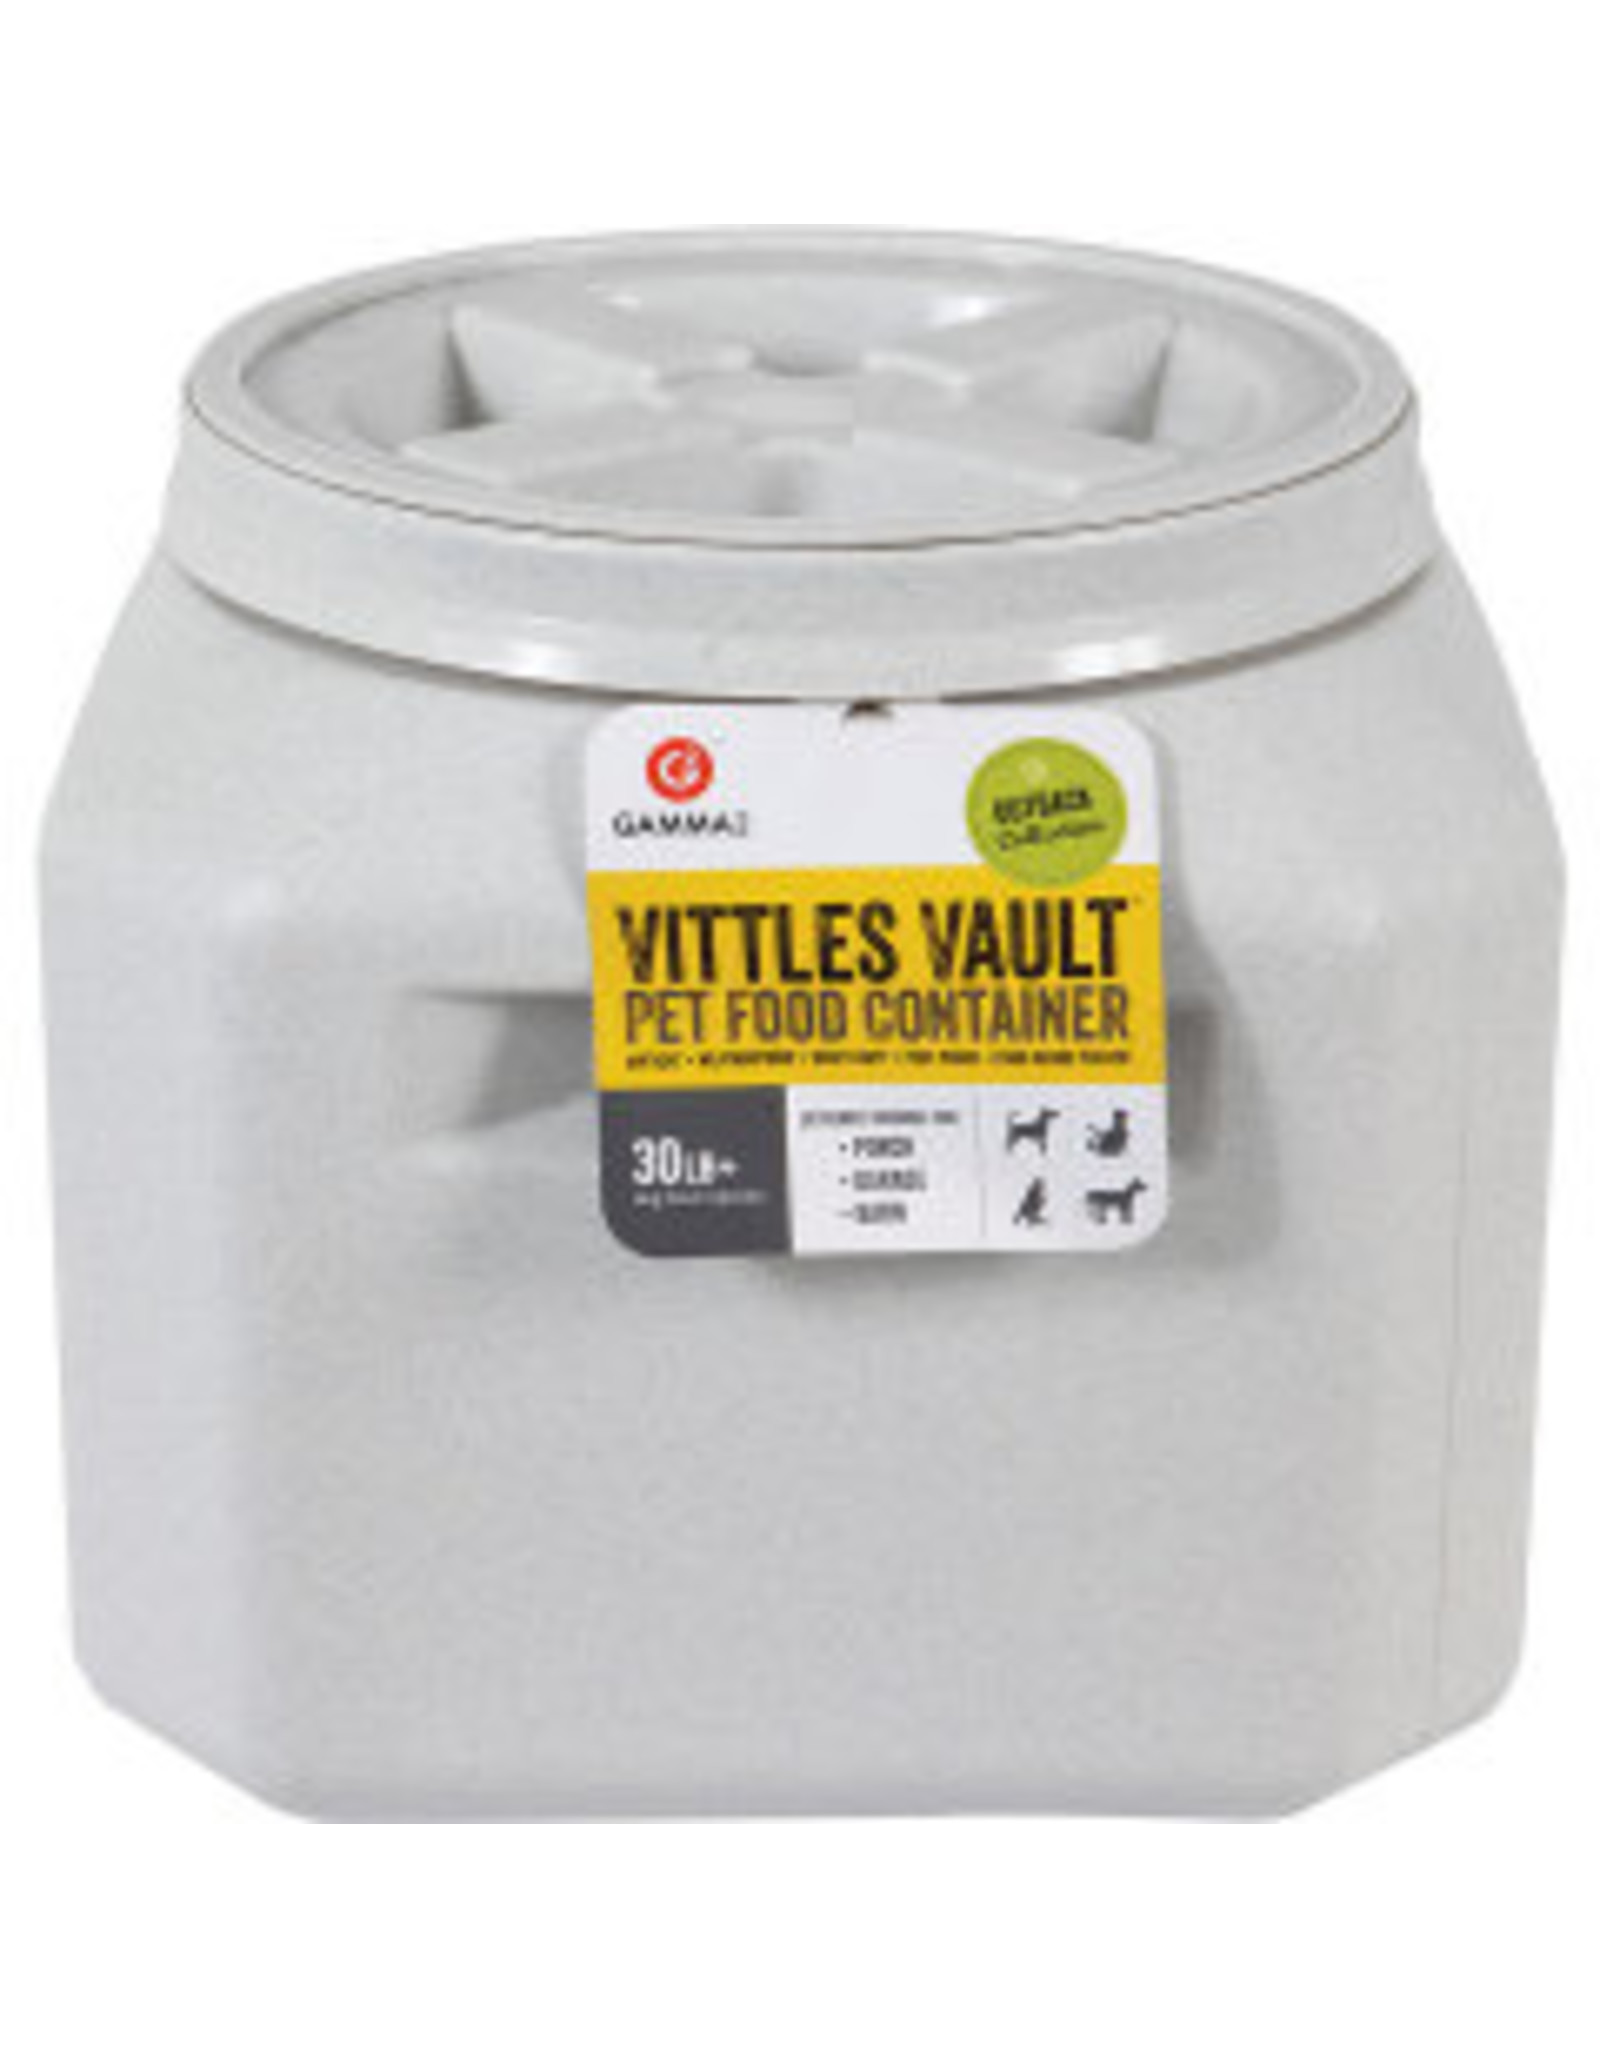 Petmate Petmate Vittle Vault Pet Food Container Outback Collection